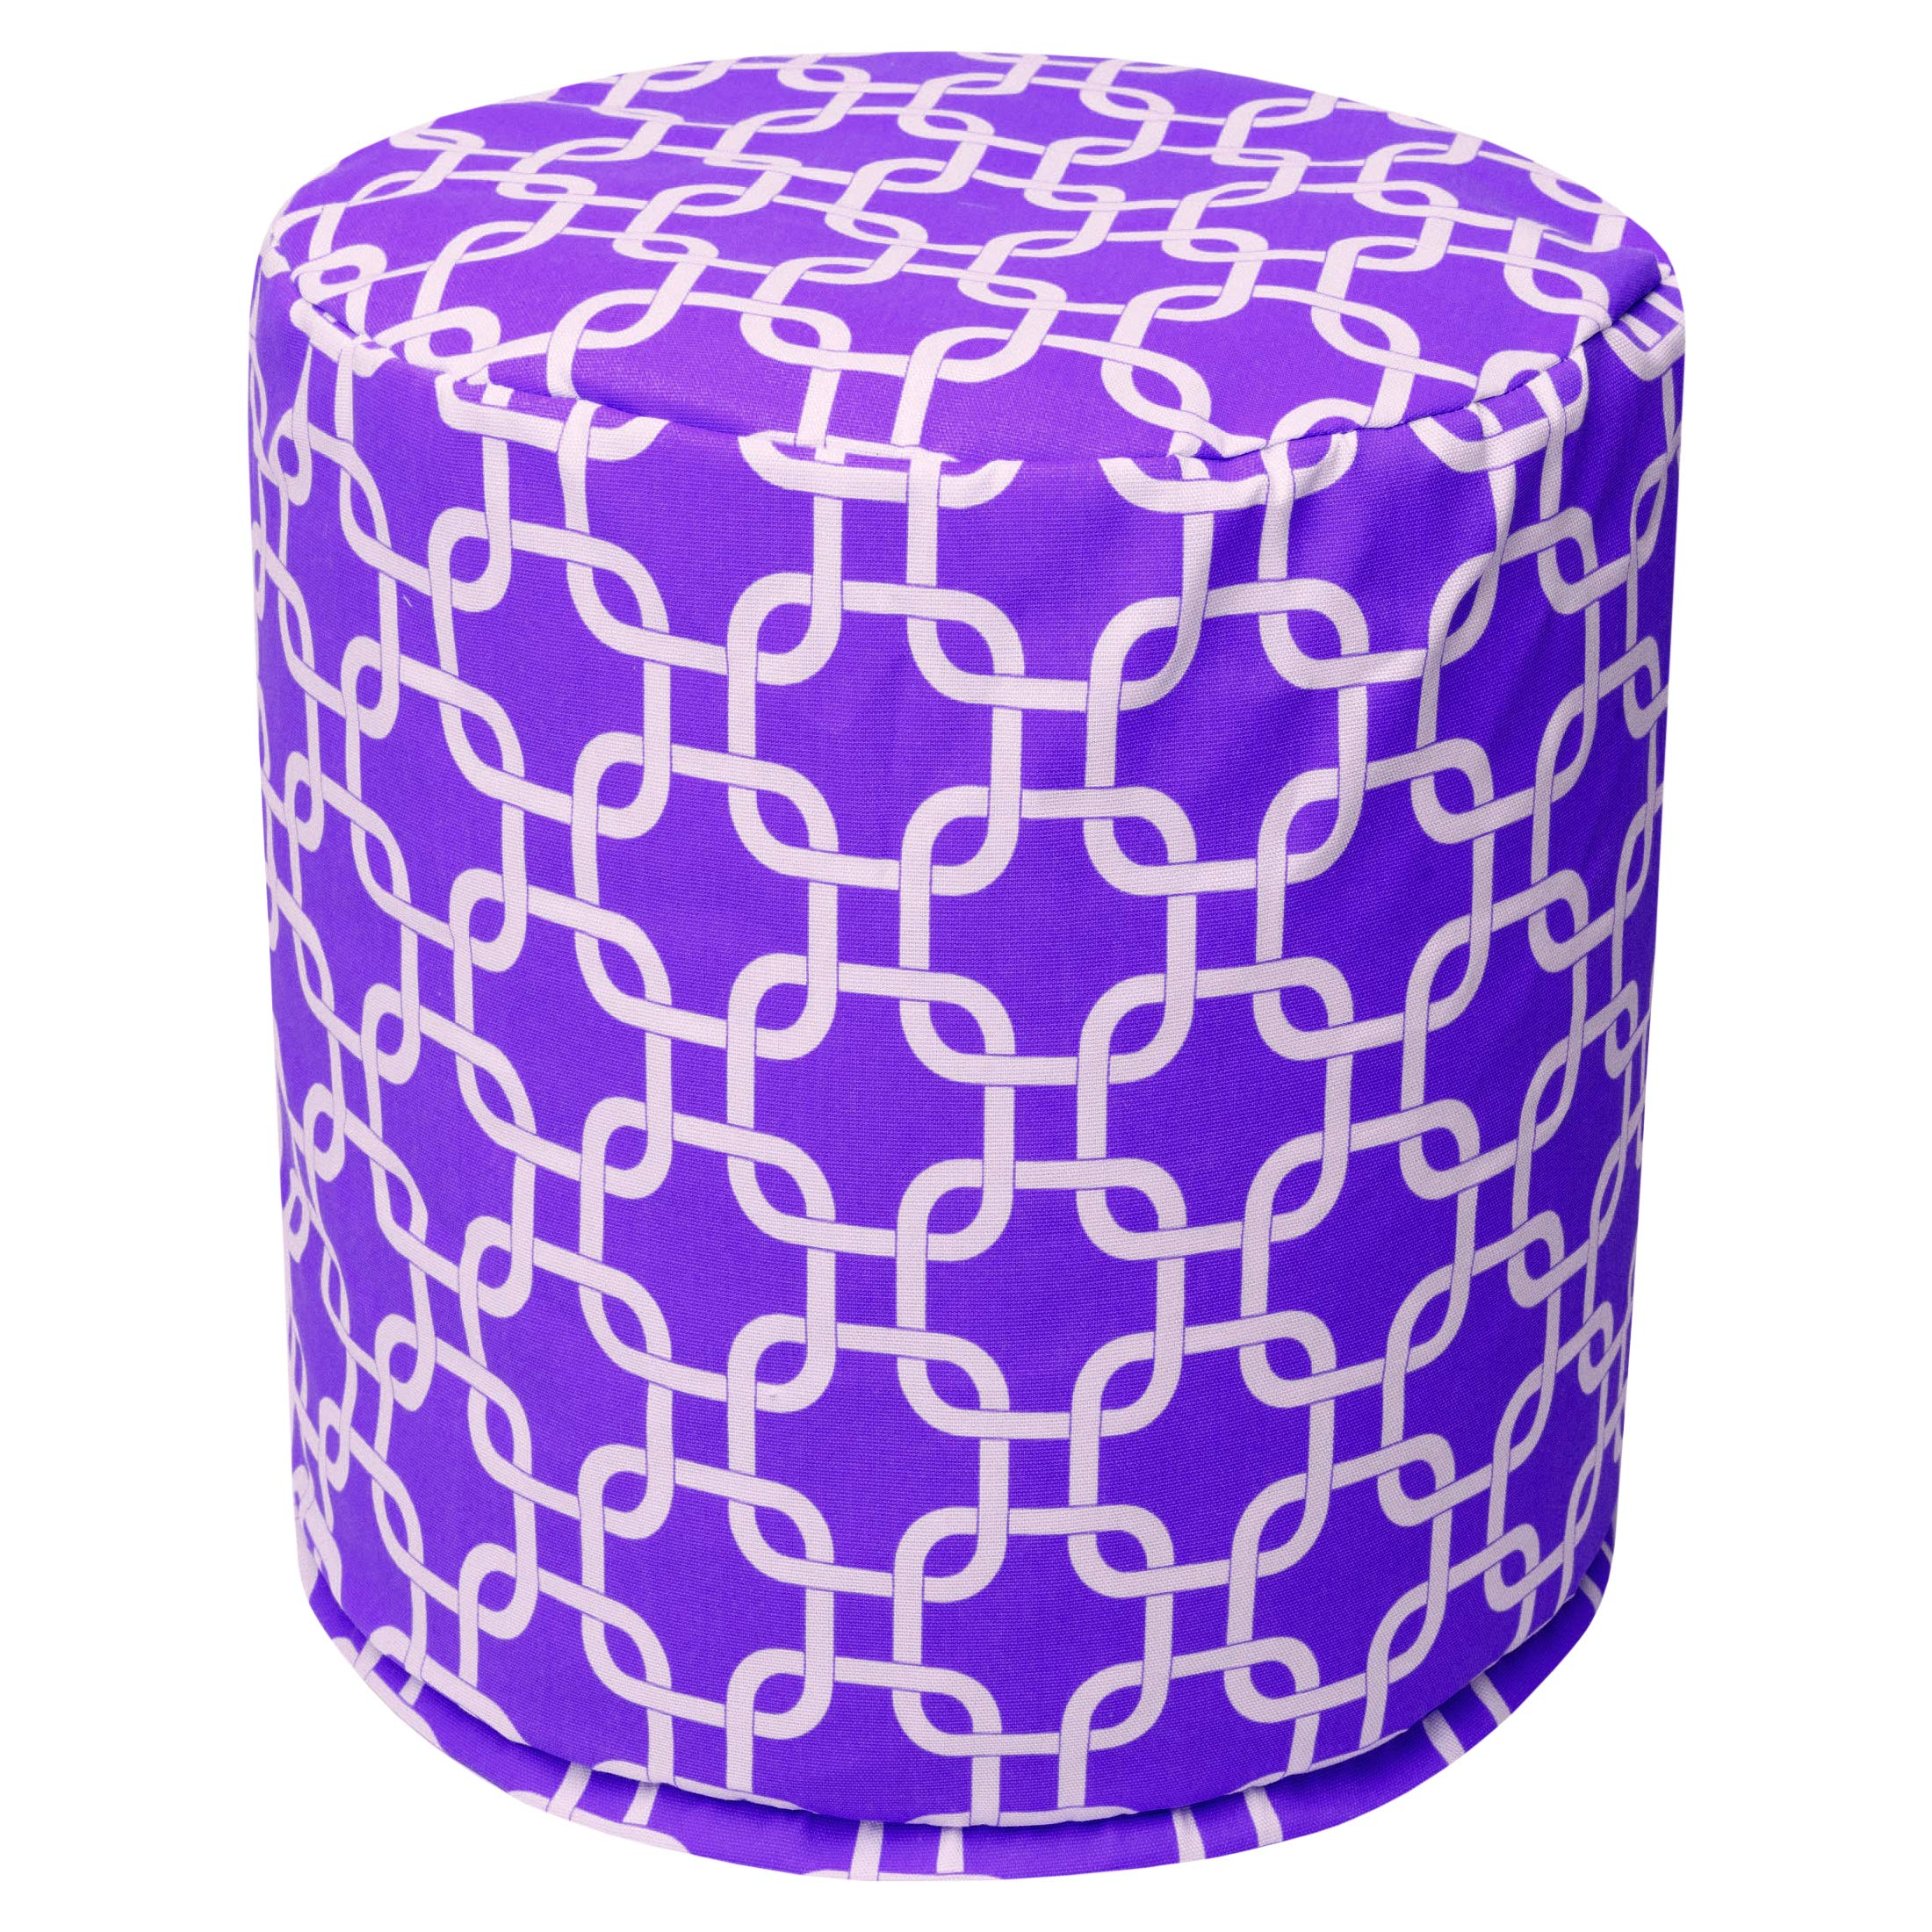 Majestic Home Goods Purple Links Indoor Bean Bag Ottoman Pouf 16'' L x 16'' W x 17'' H